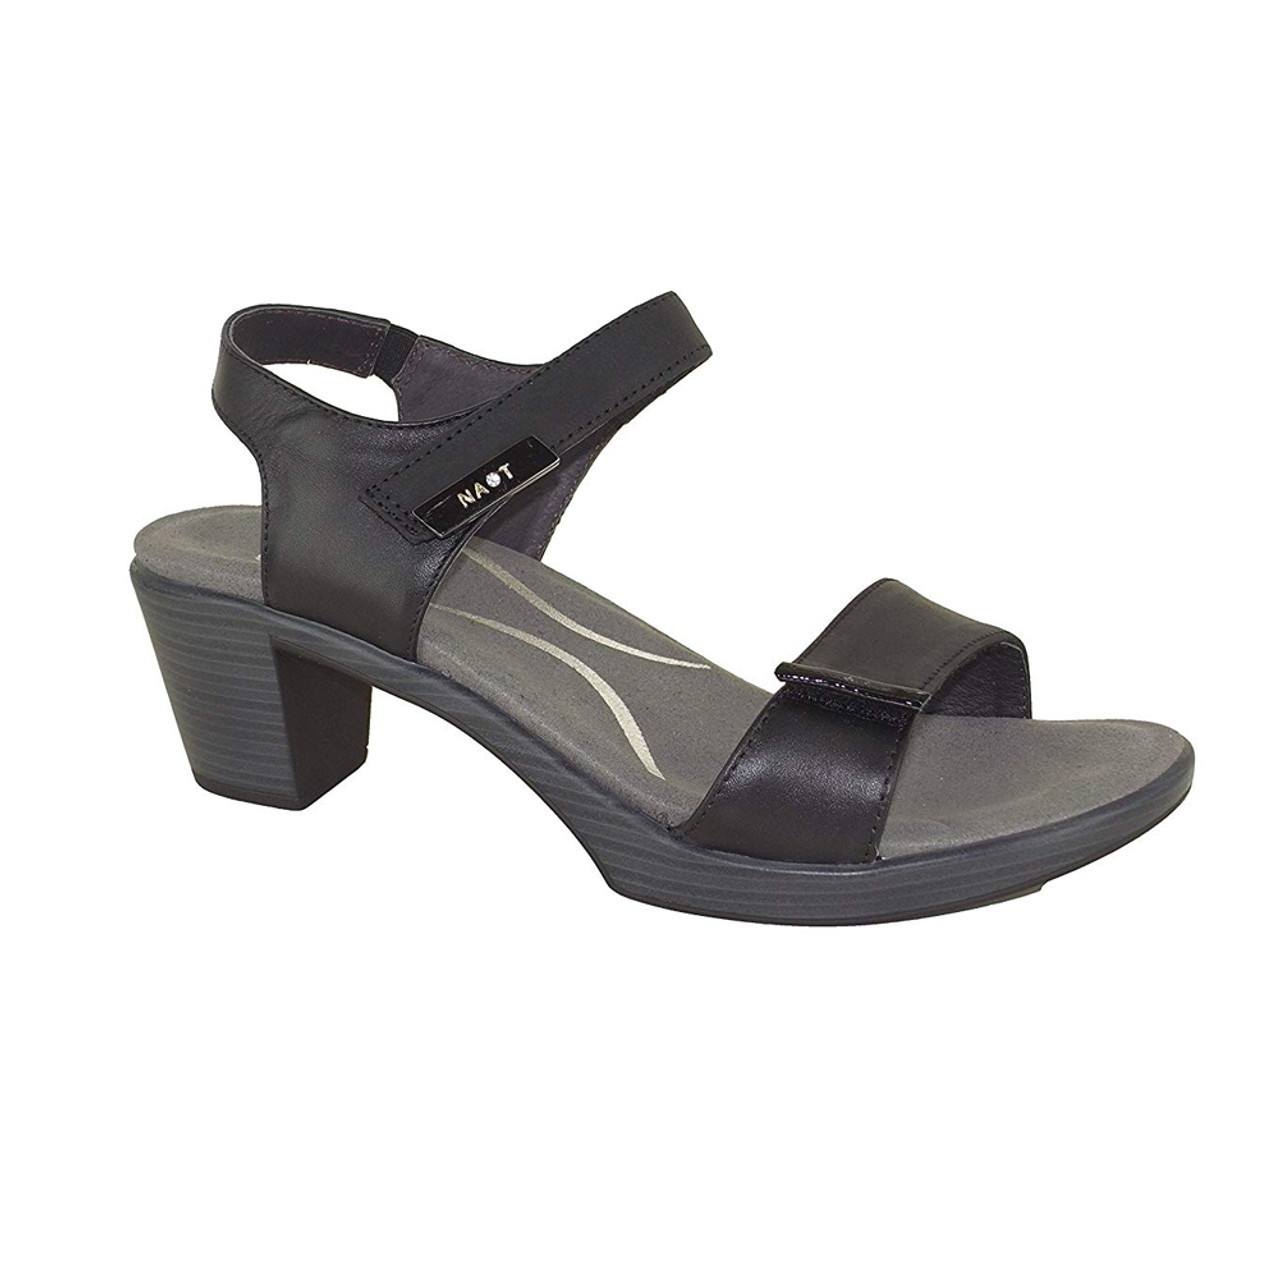 70b1bf9123f0 Naot Women s Intact Sandal Oily Coal Black Raven - Shop now   Shoolu.com